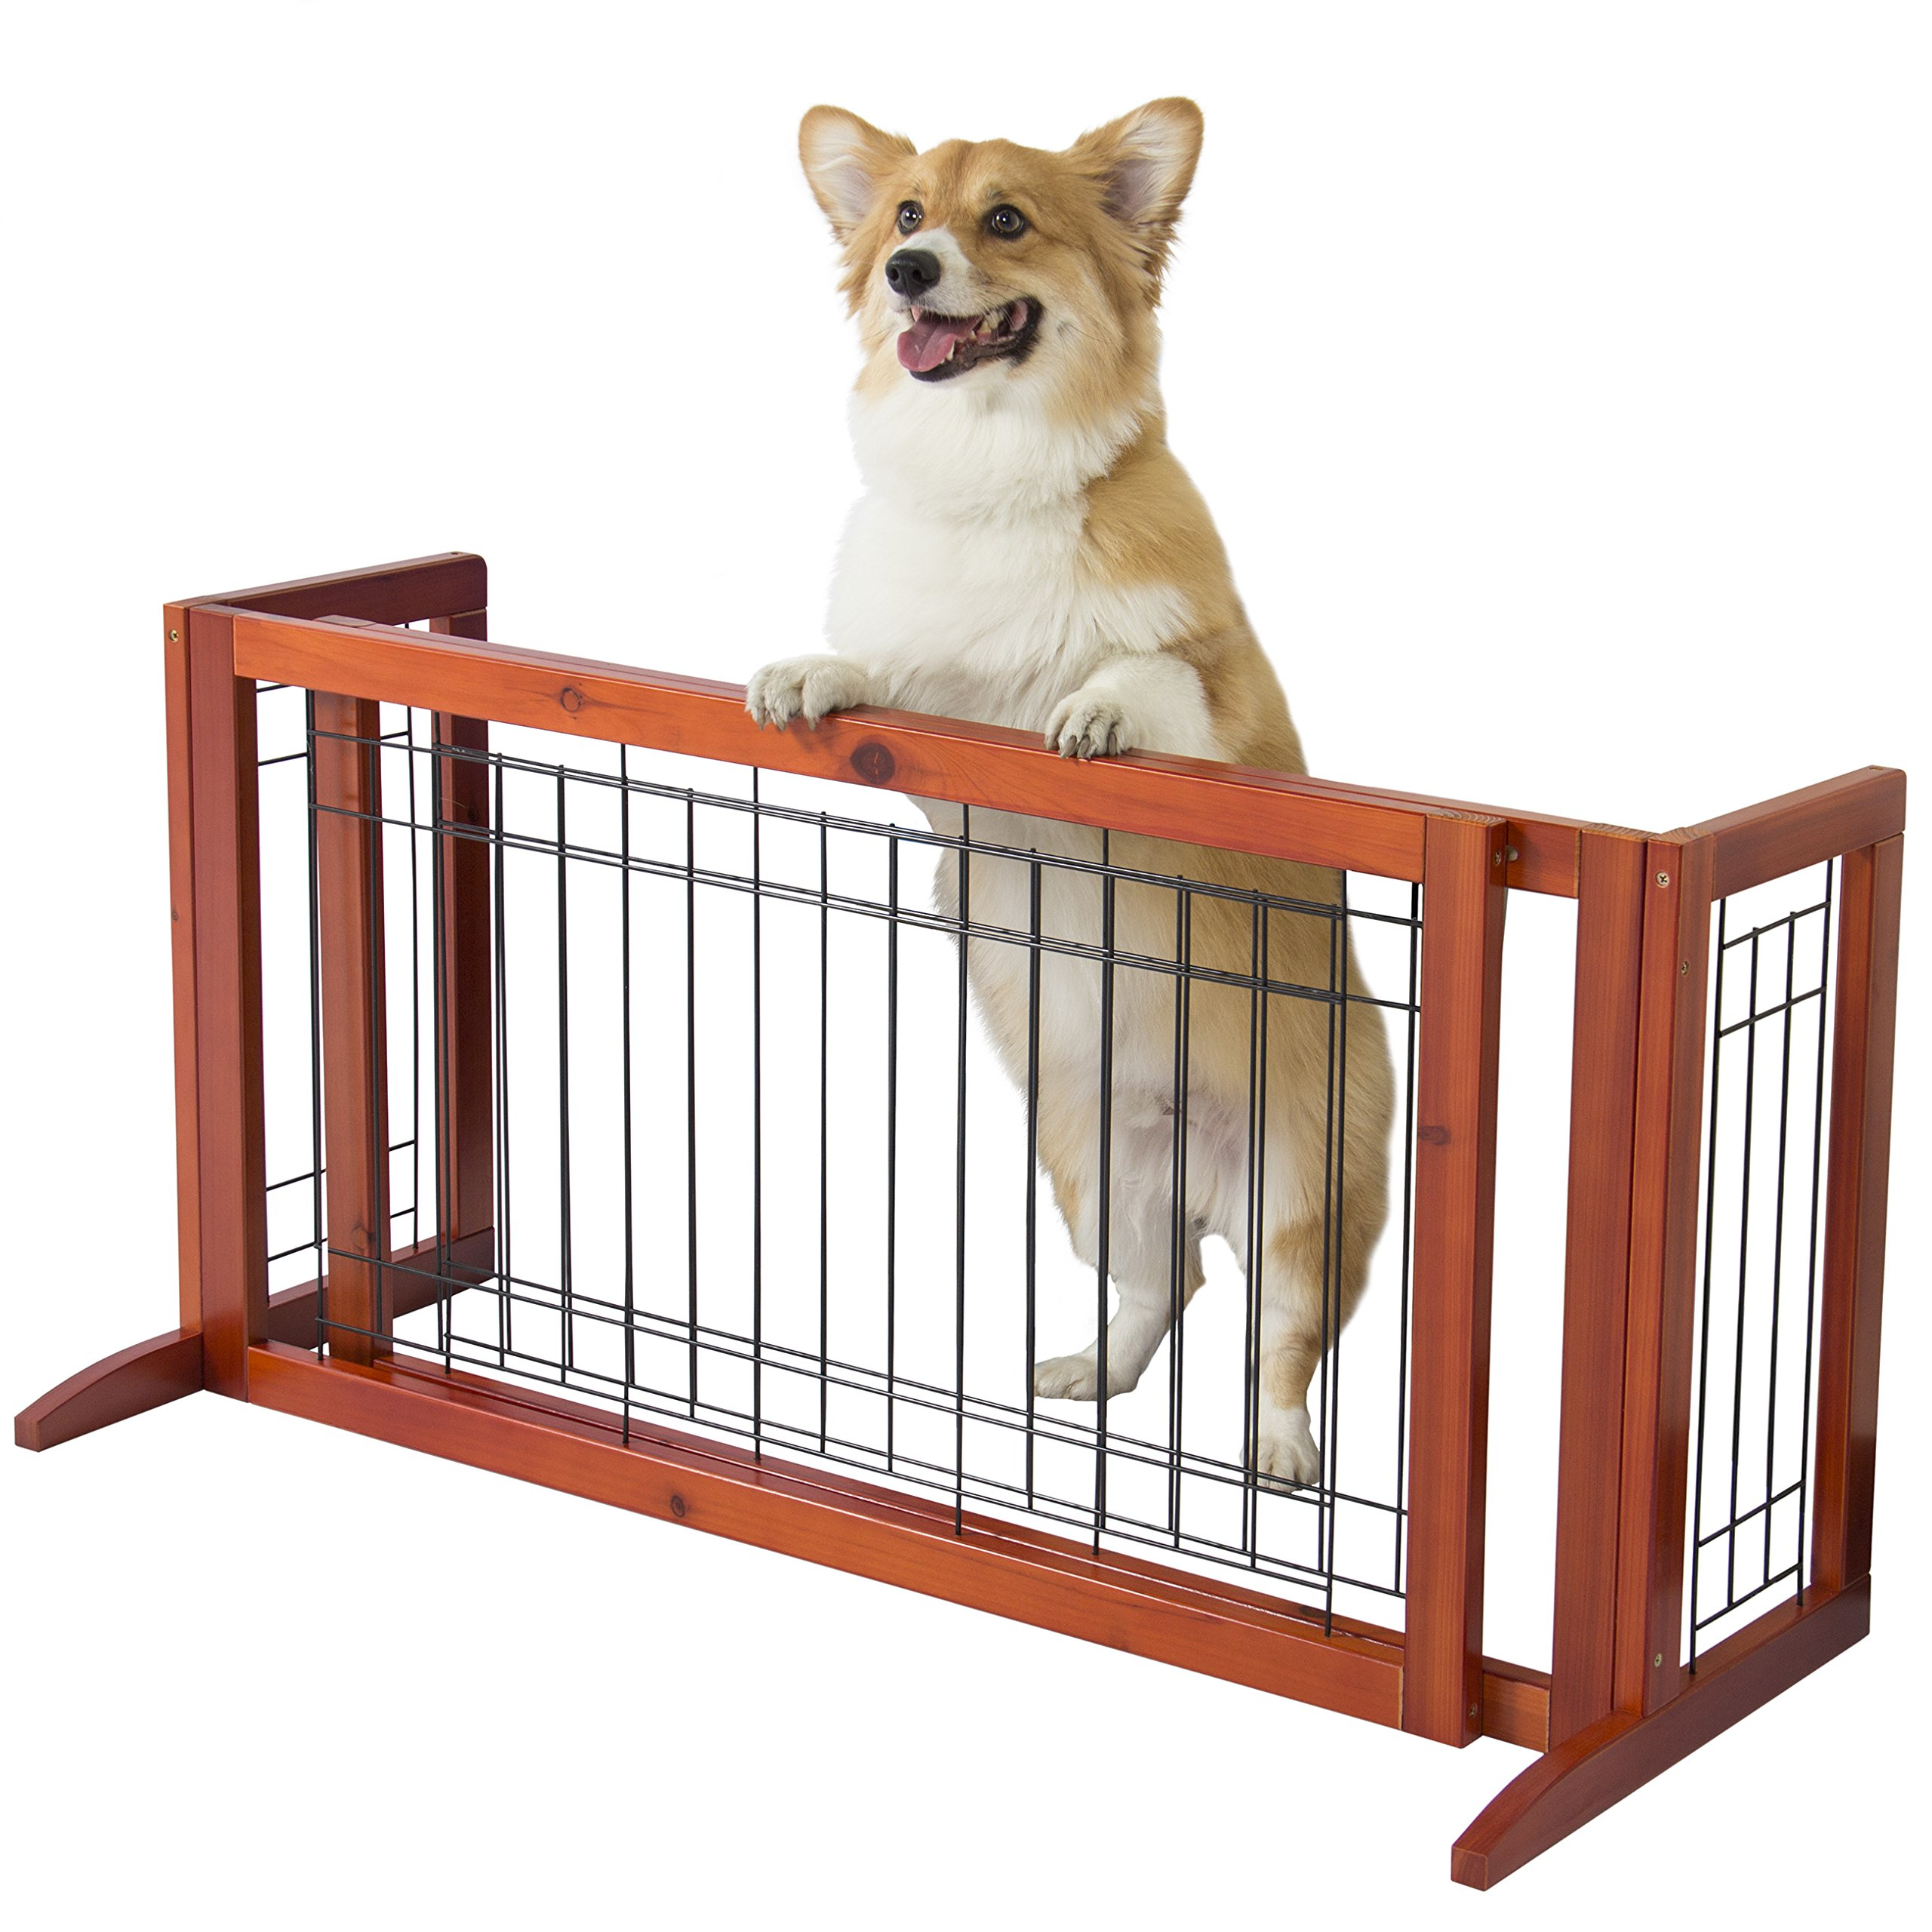 Best Choice Products Adjustable Freestanding Pet Dog Fence Gate for Small Animals, Indoor - Brown